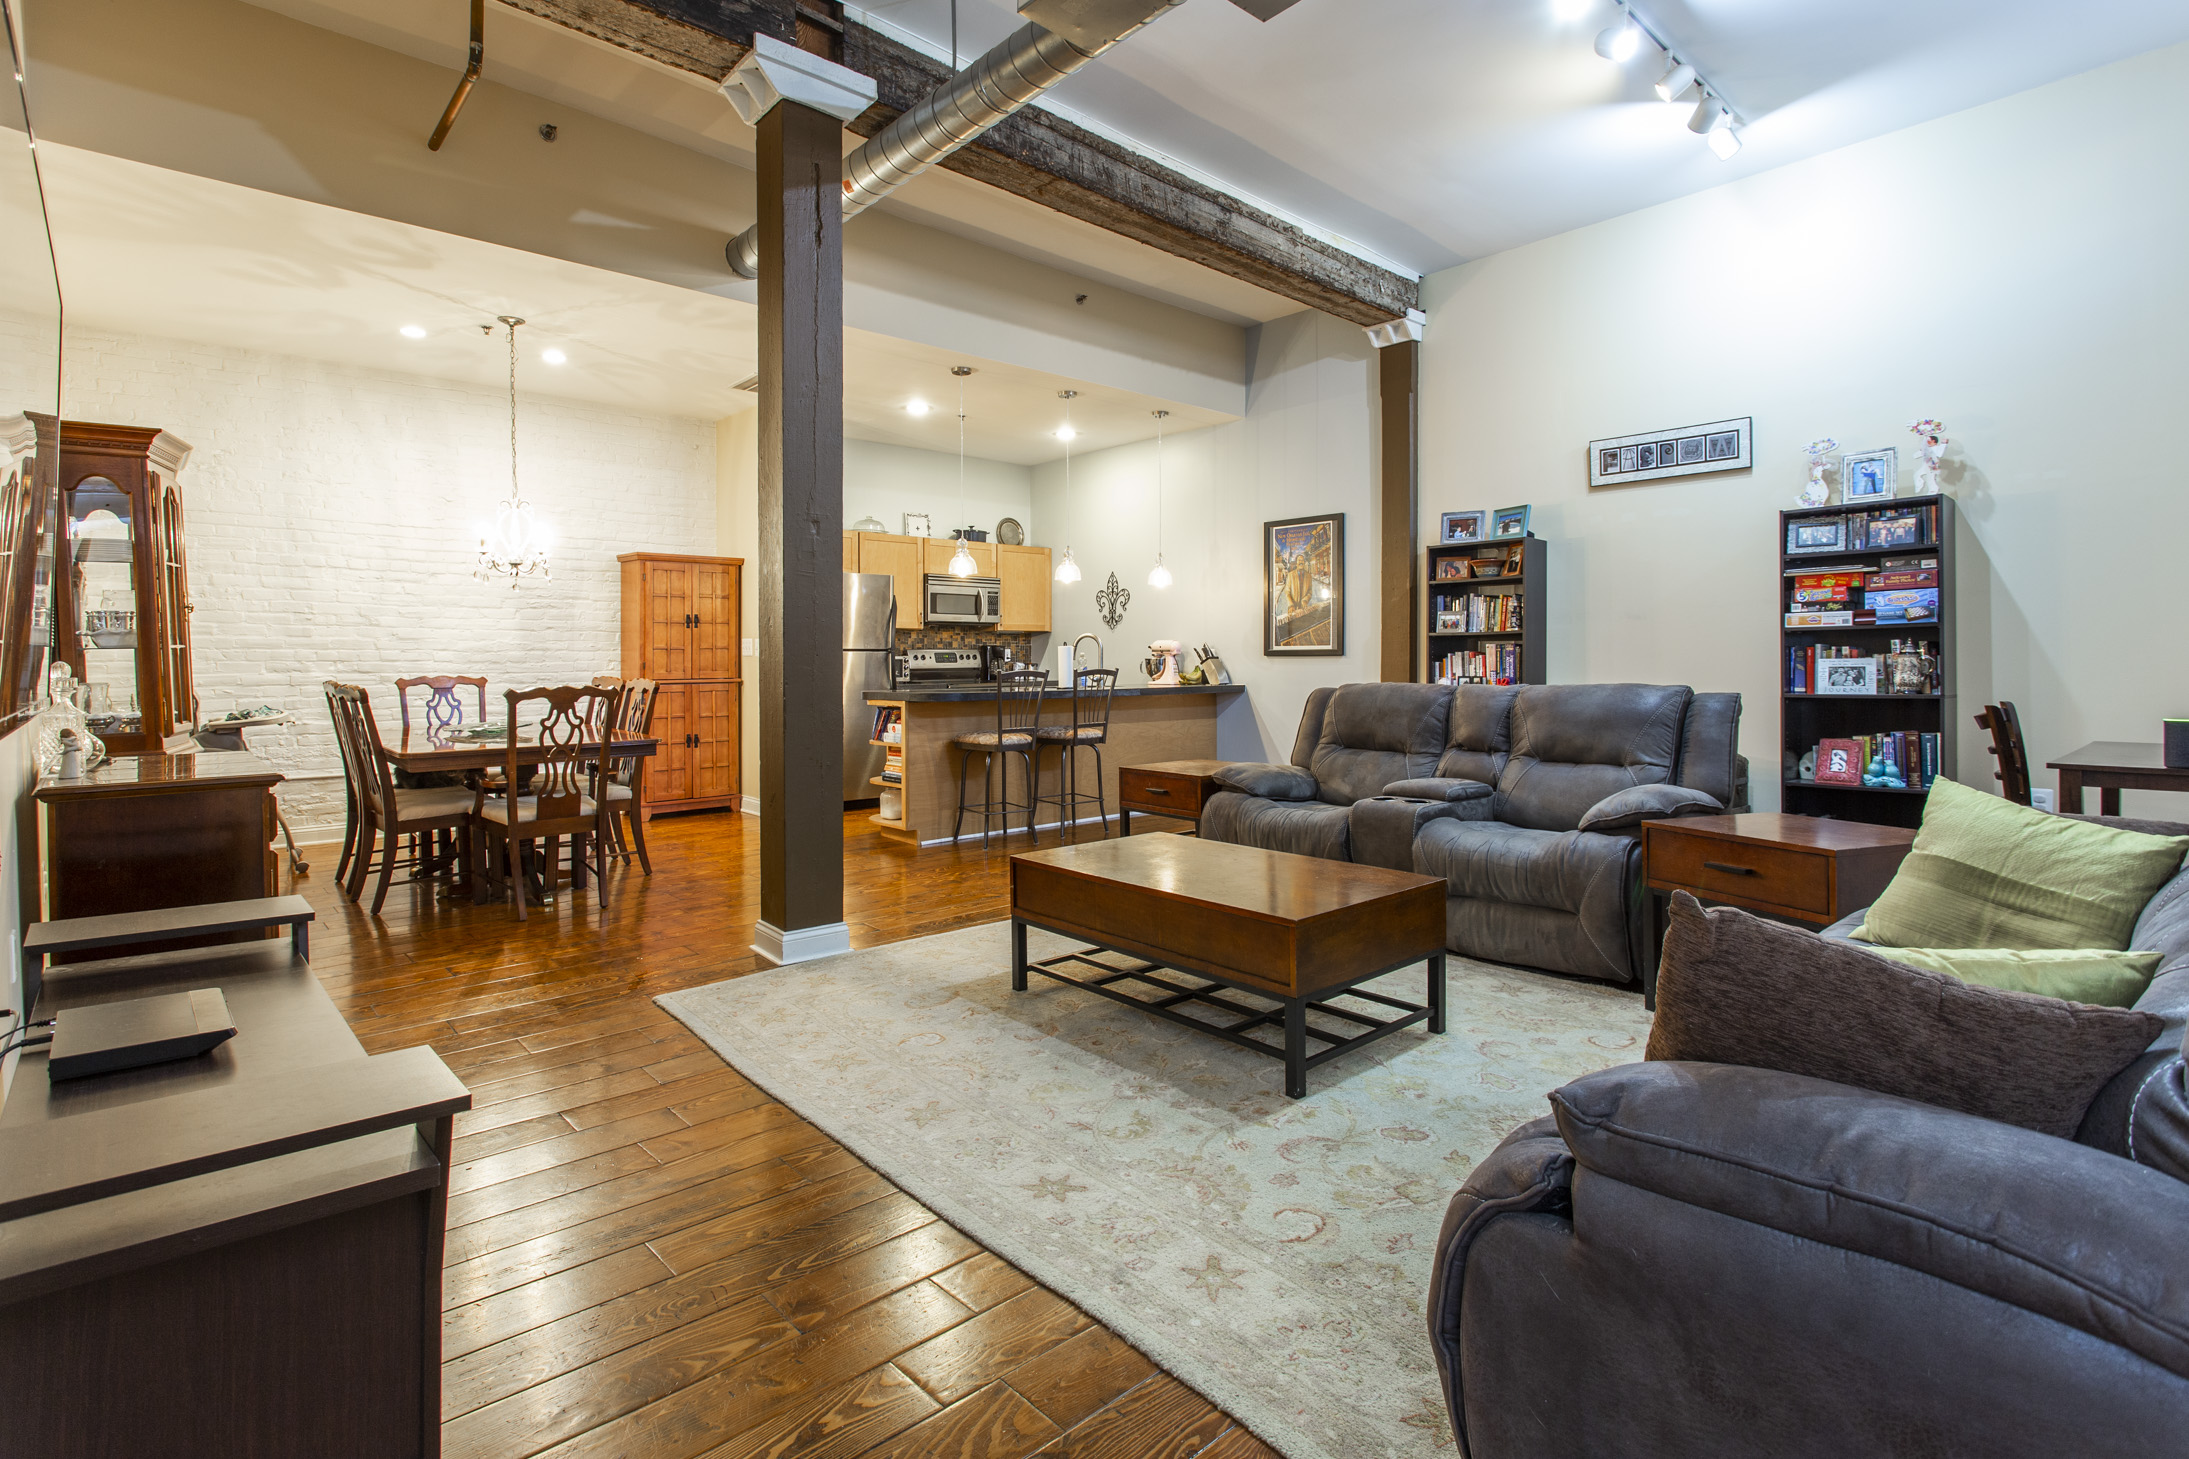 Industrial loft in renovated Old City candy factory wants $440K